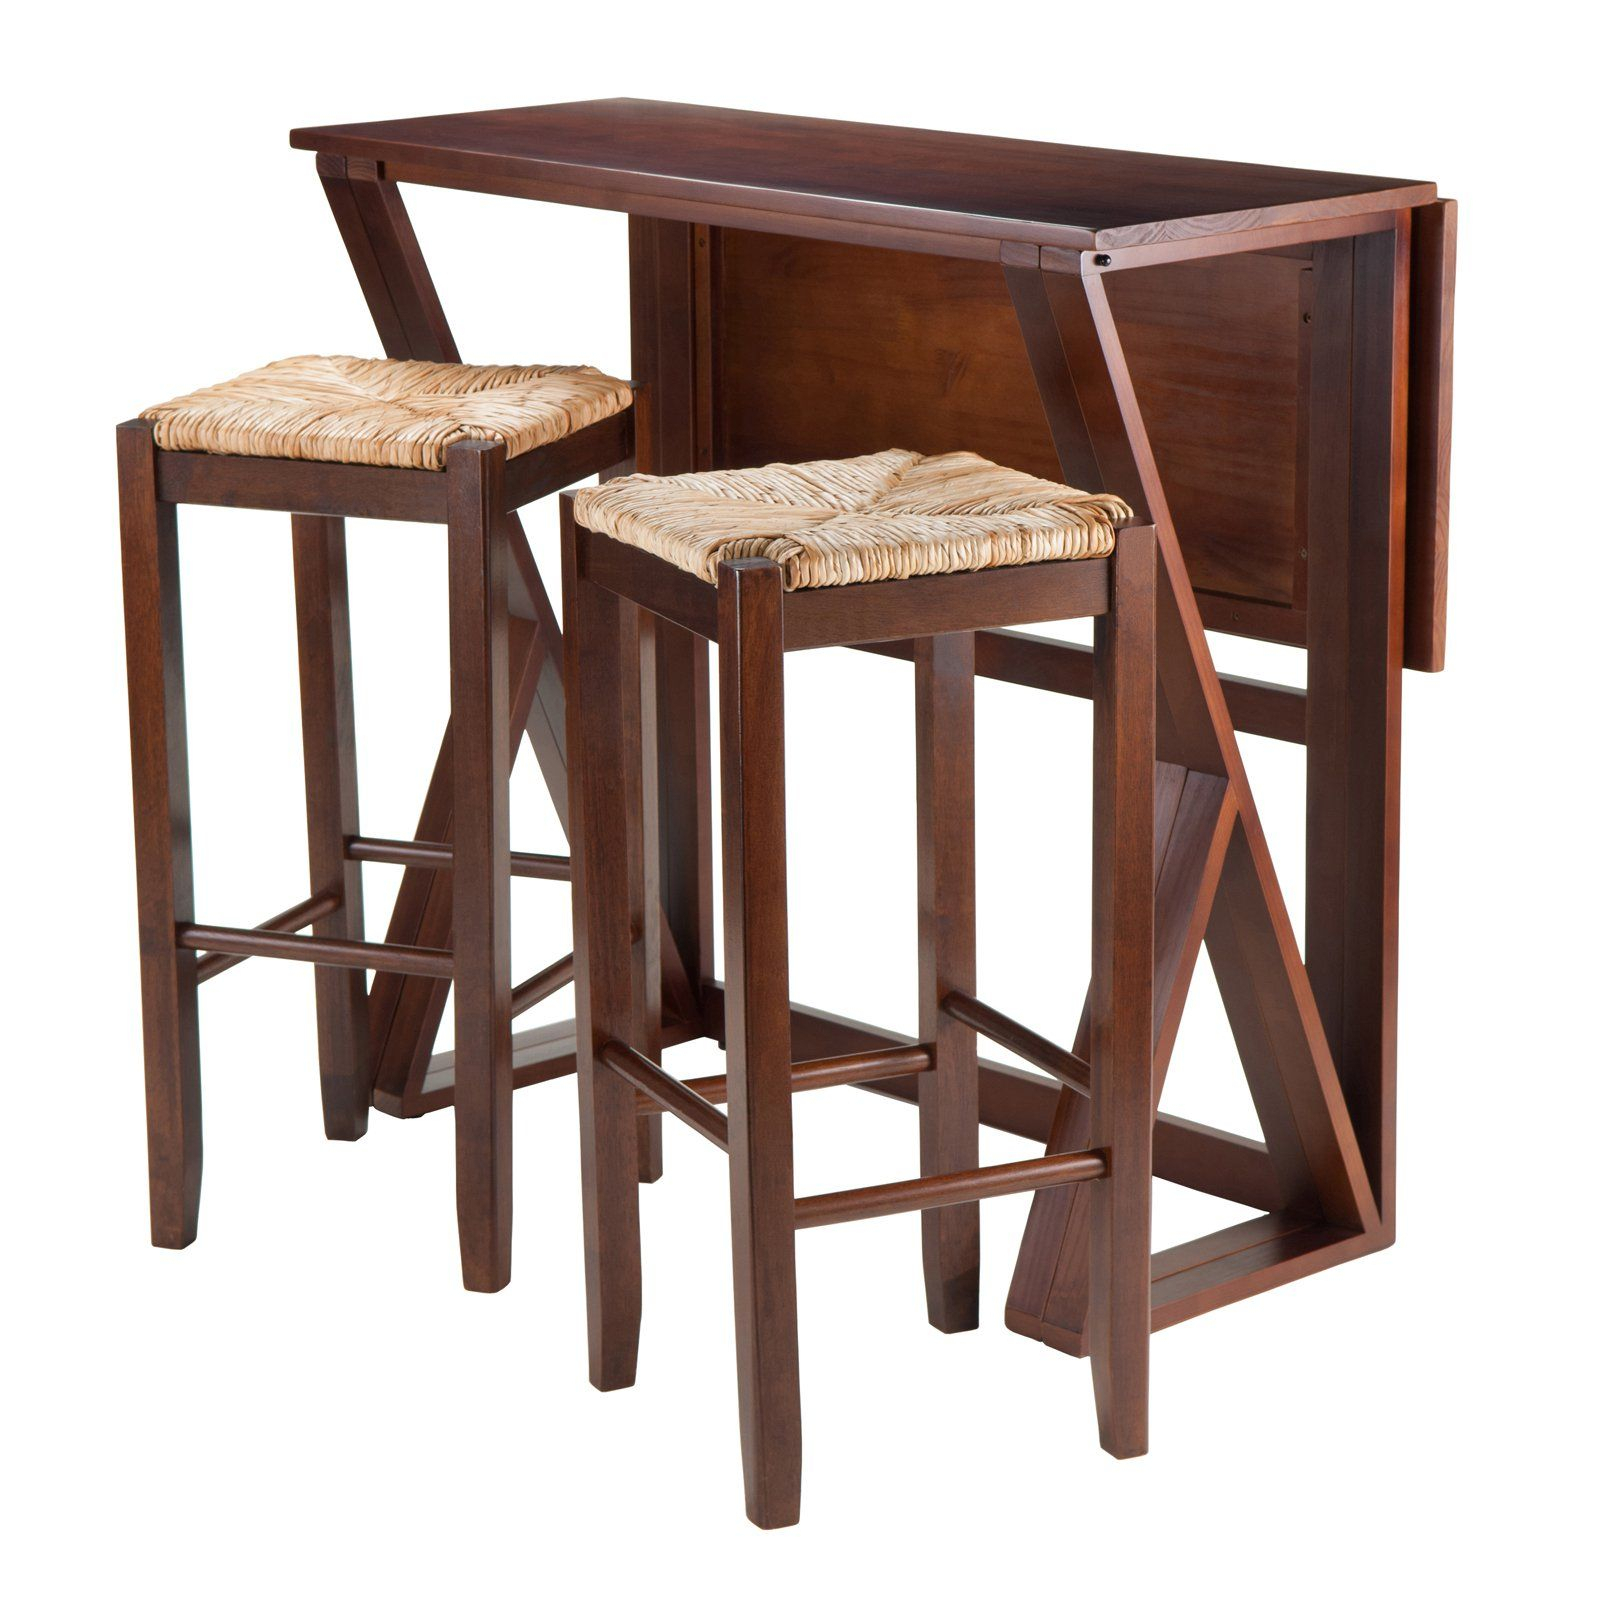 Winsome Trading Harrington 3 Piece Counter Height Dining Table Set Throughout Recent Crownover 3 Piece Bar Table Sets (Image 19 of 20)